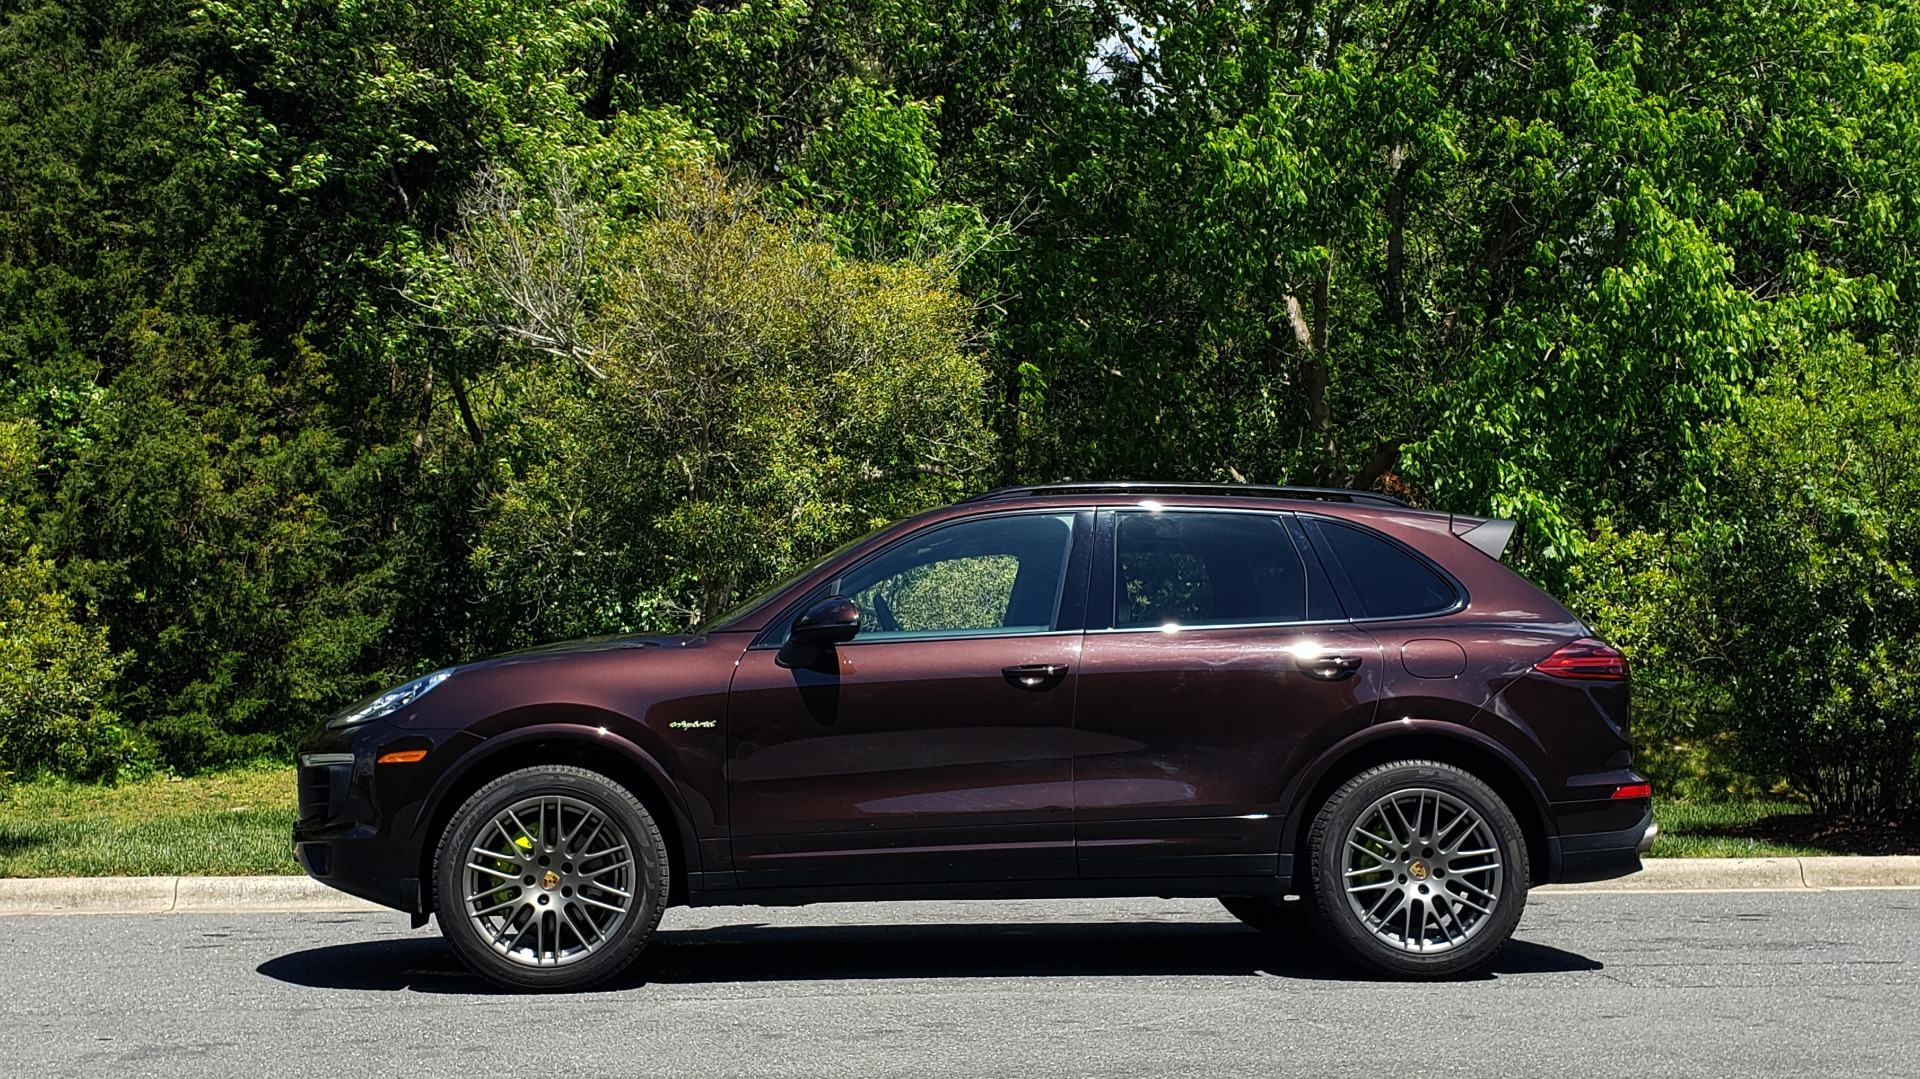 Used 2017 Porsche CAYENNE S E-HYBRID PLATINUM EDITION for sale Sold at Formula Imports in Charlotte NC 28227 2